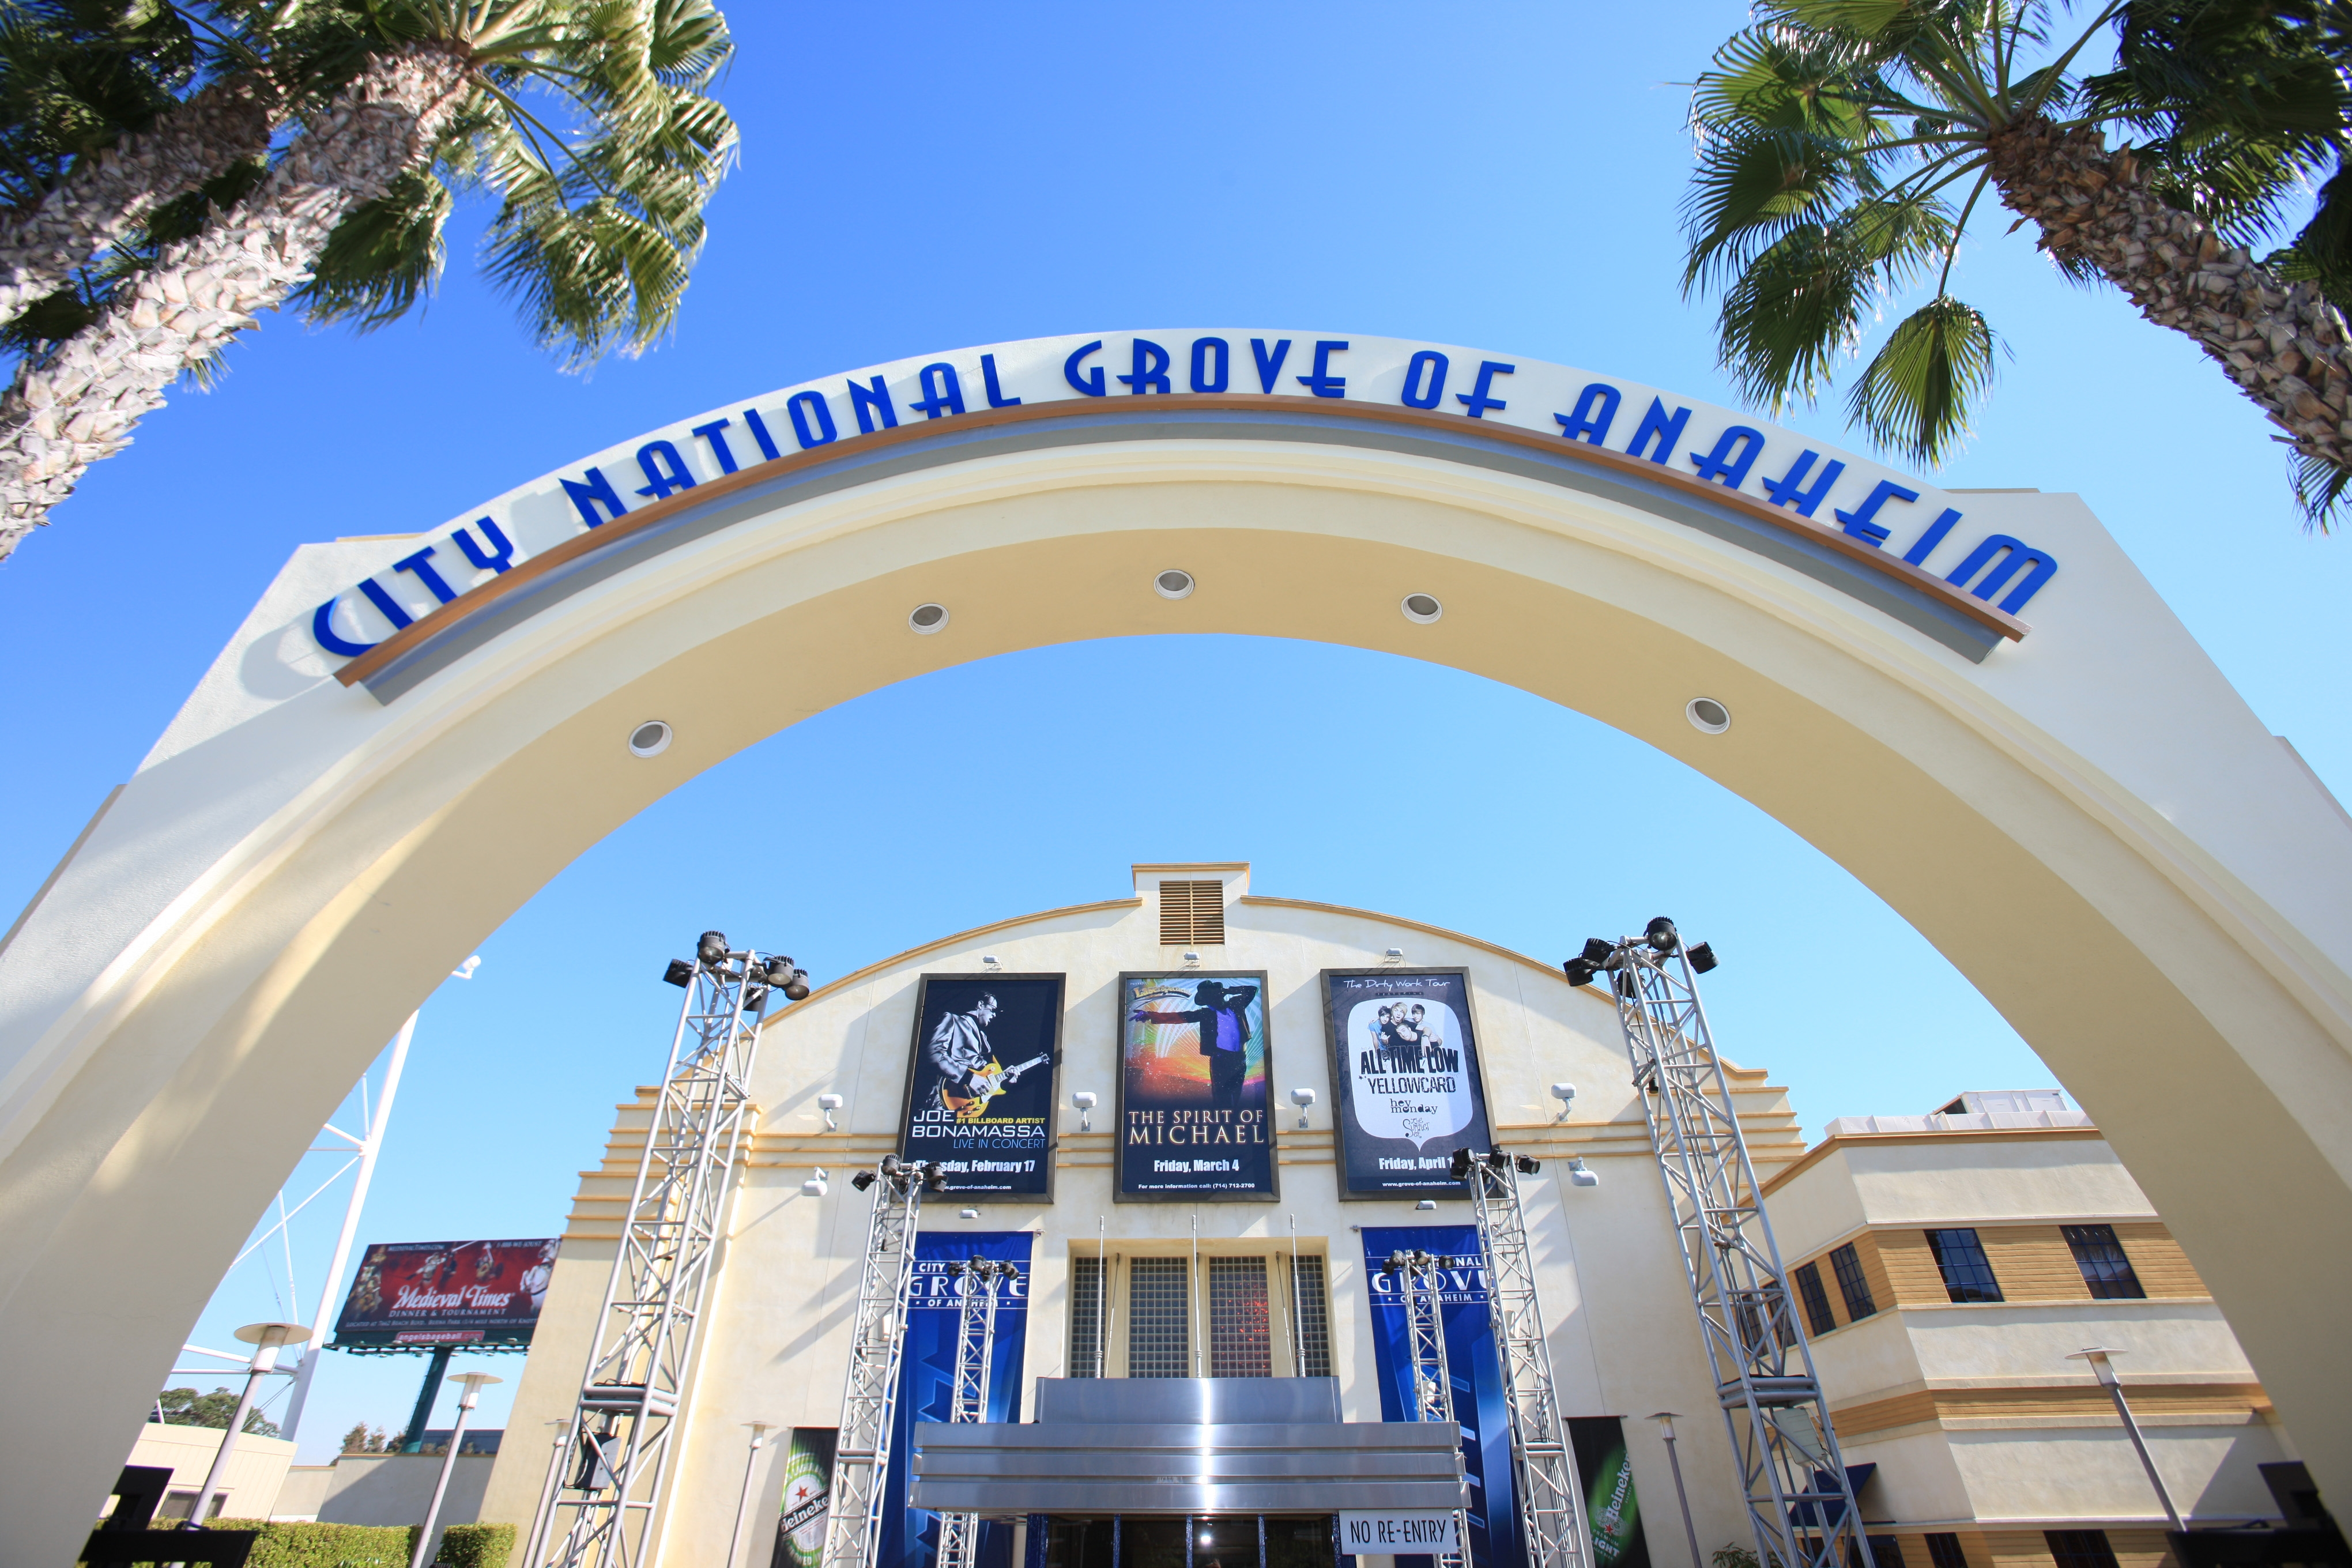 City National Grove of Anaheim Tickets